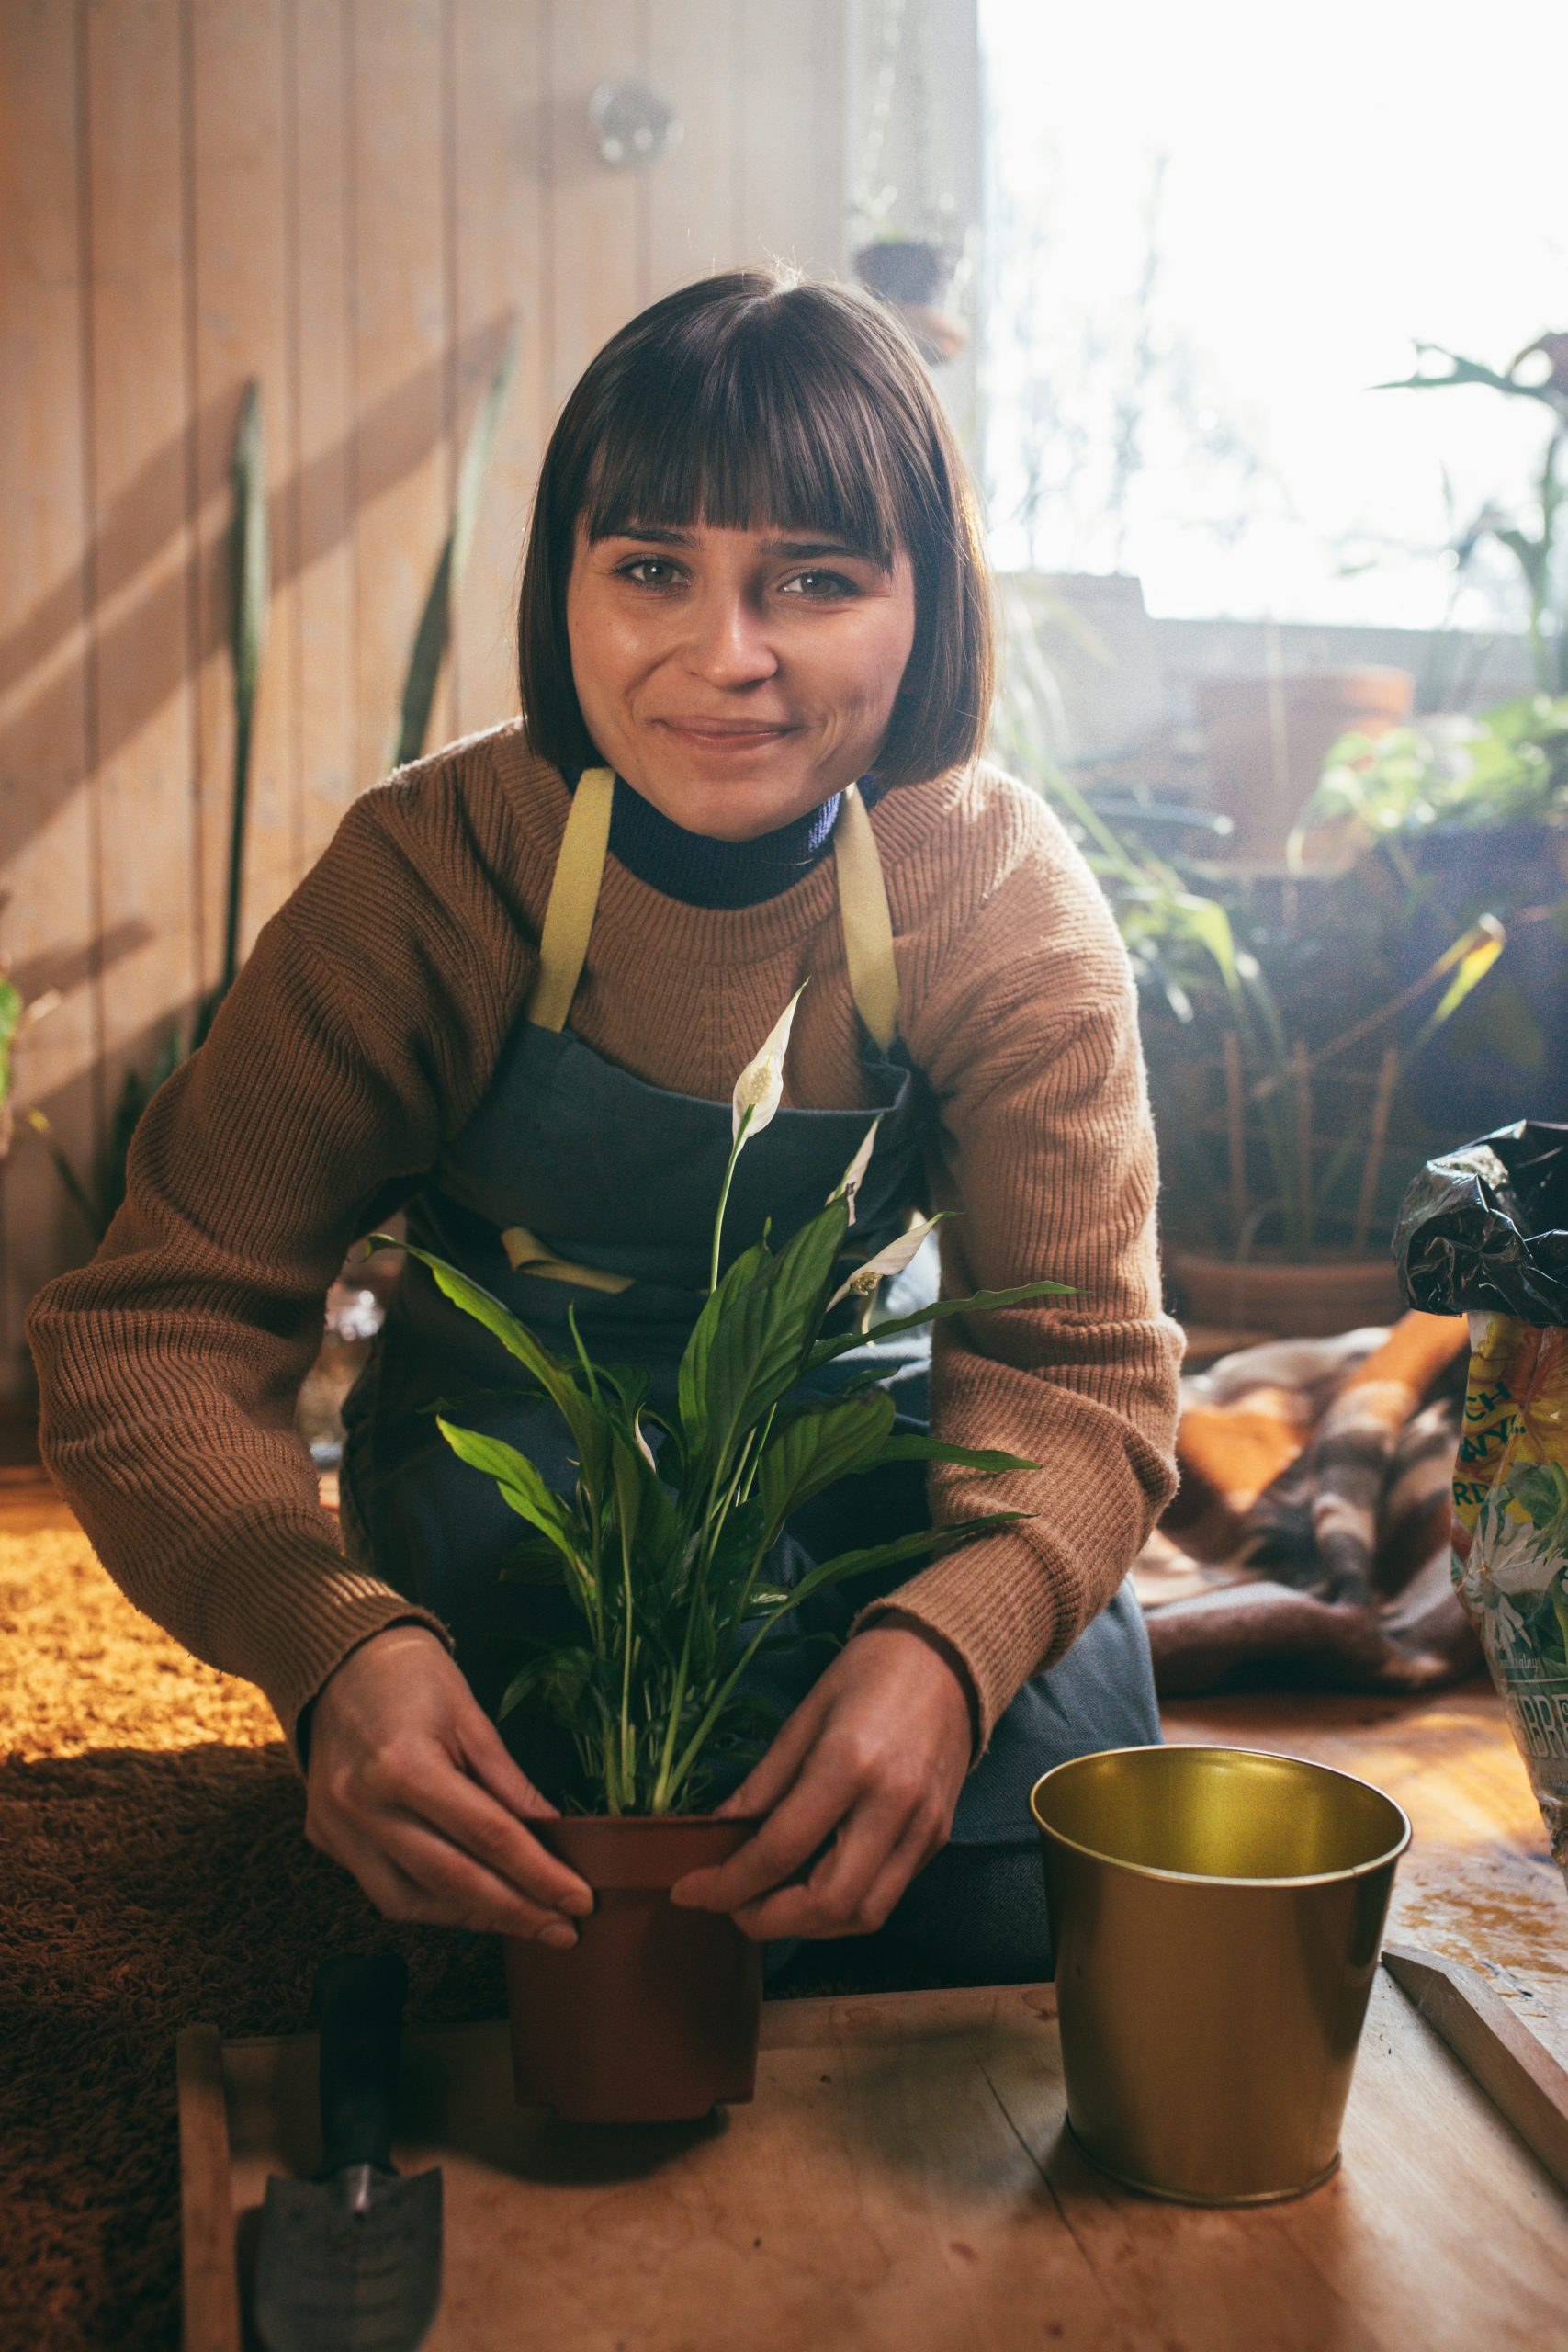 How to Repot Spathiphyllum houseplants?